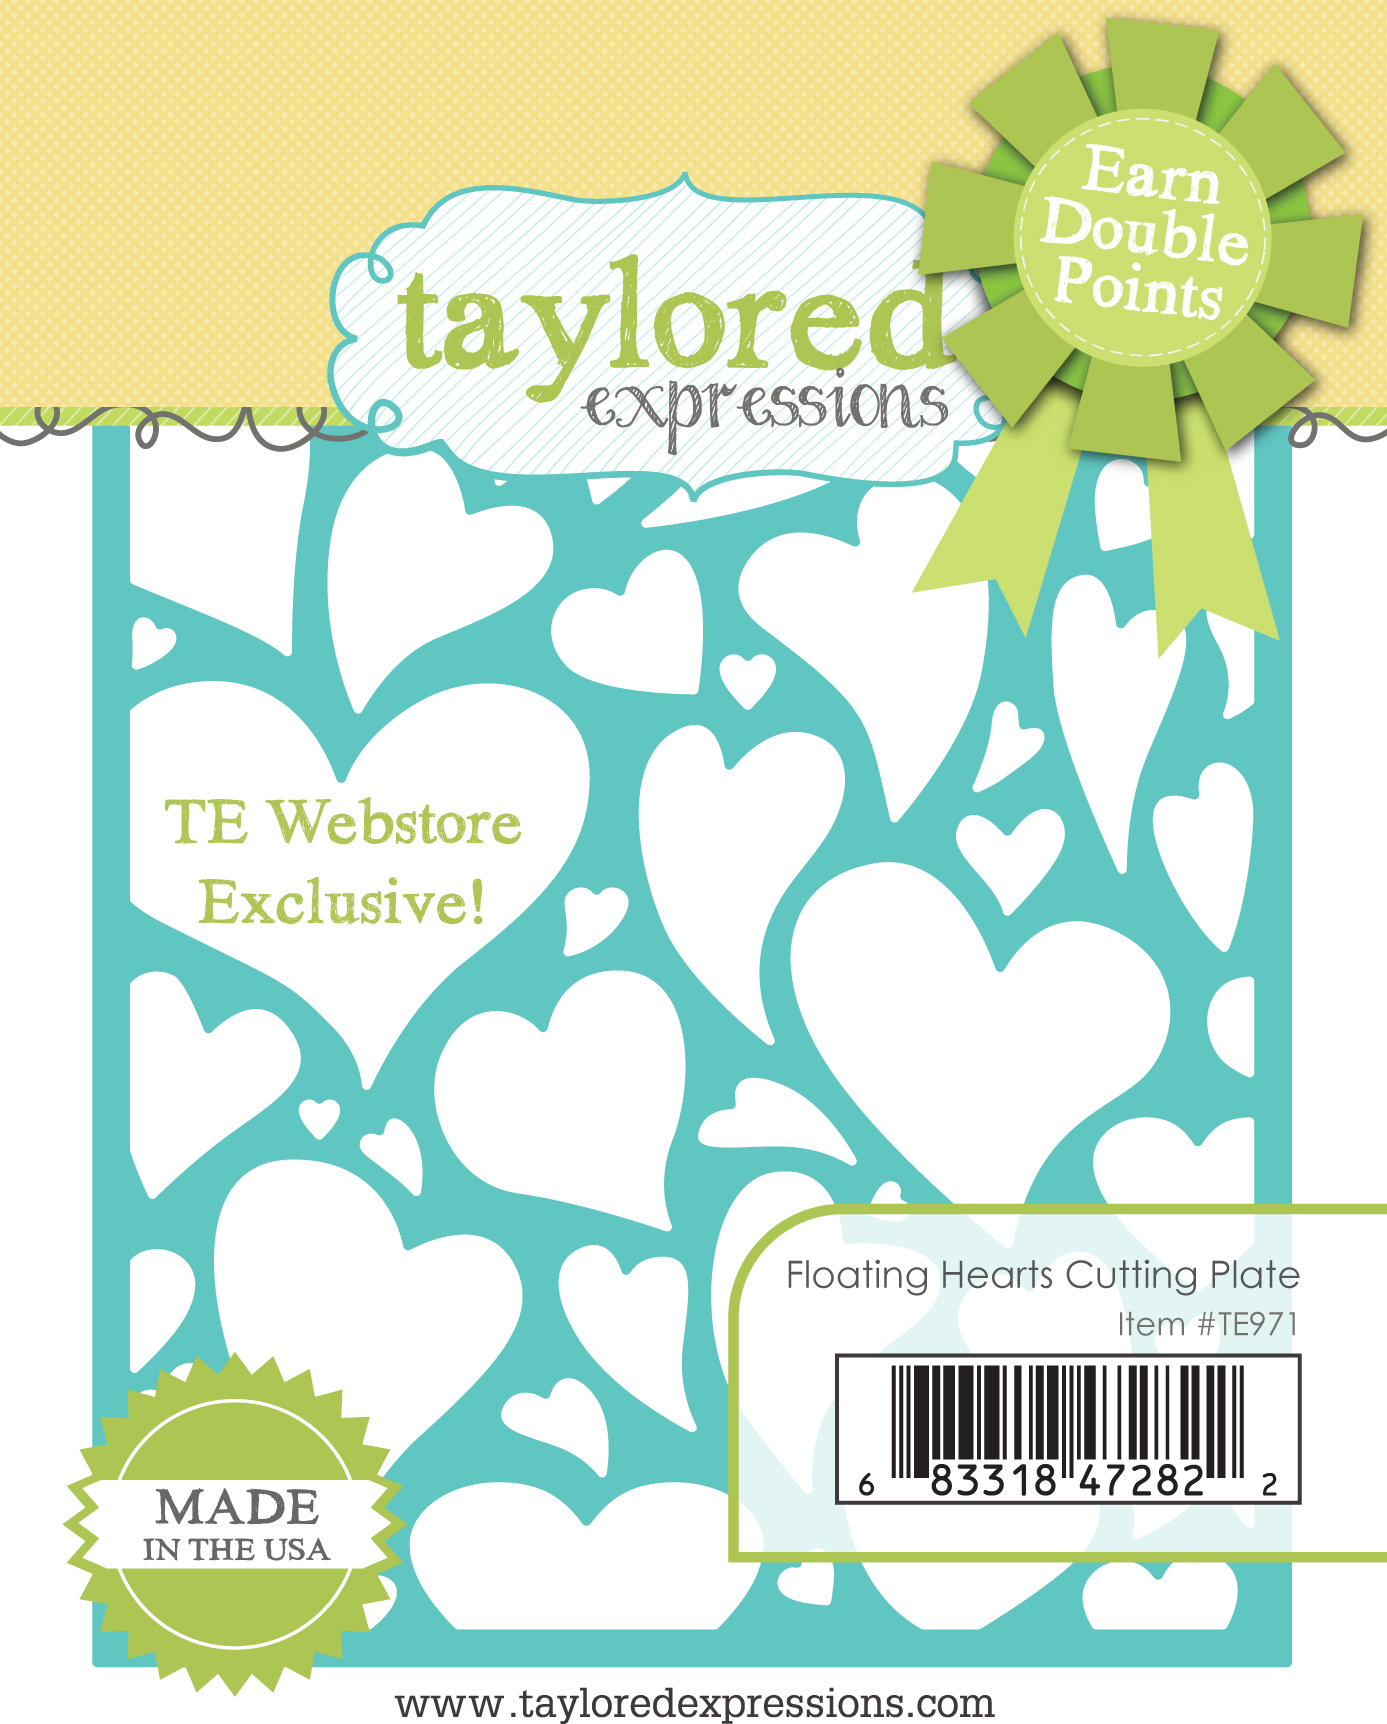 TE Floating Hearts Cutting Plate Promotion